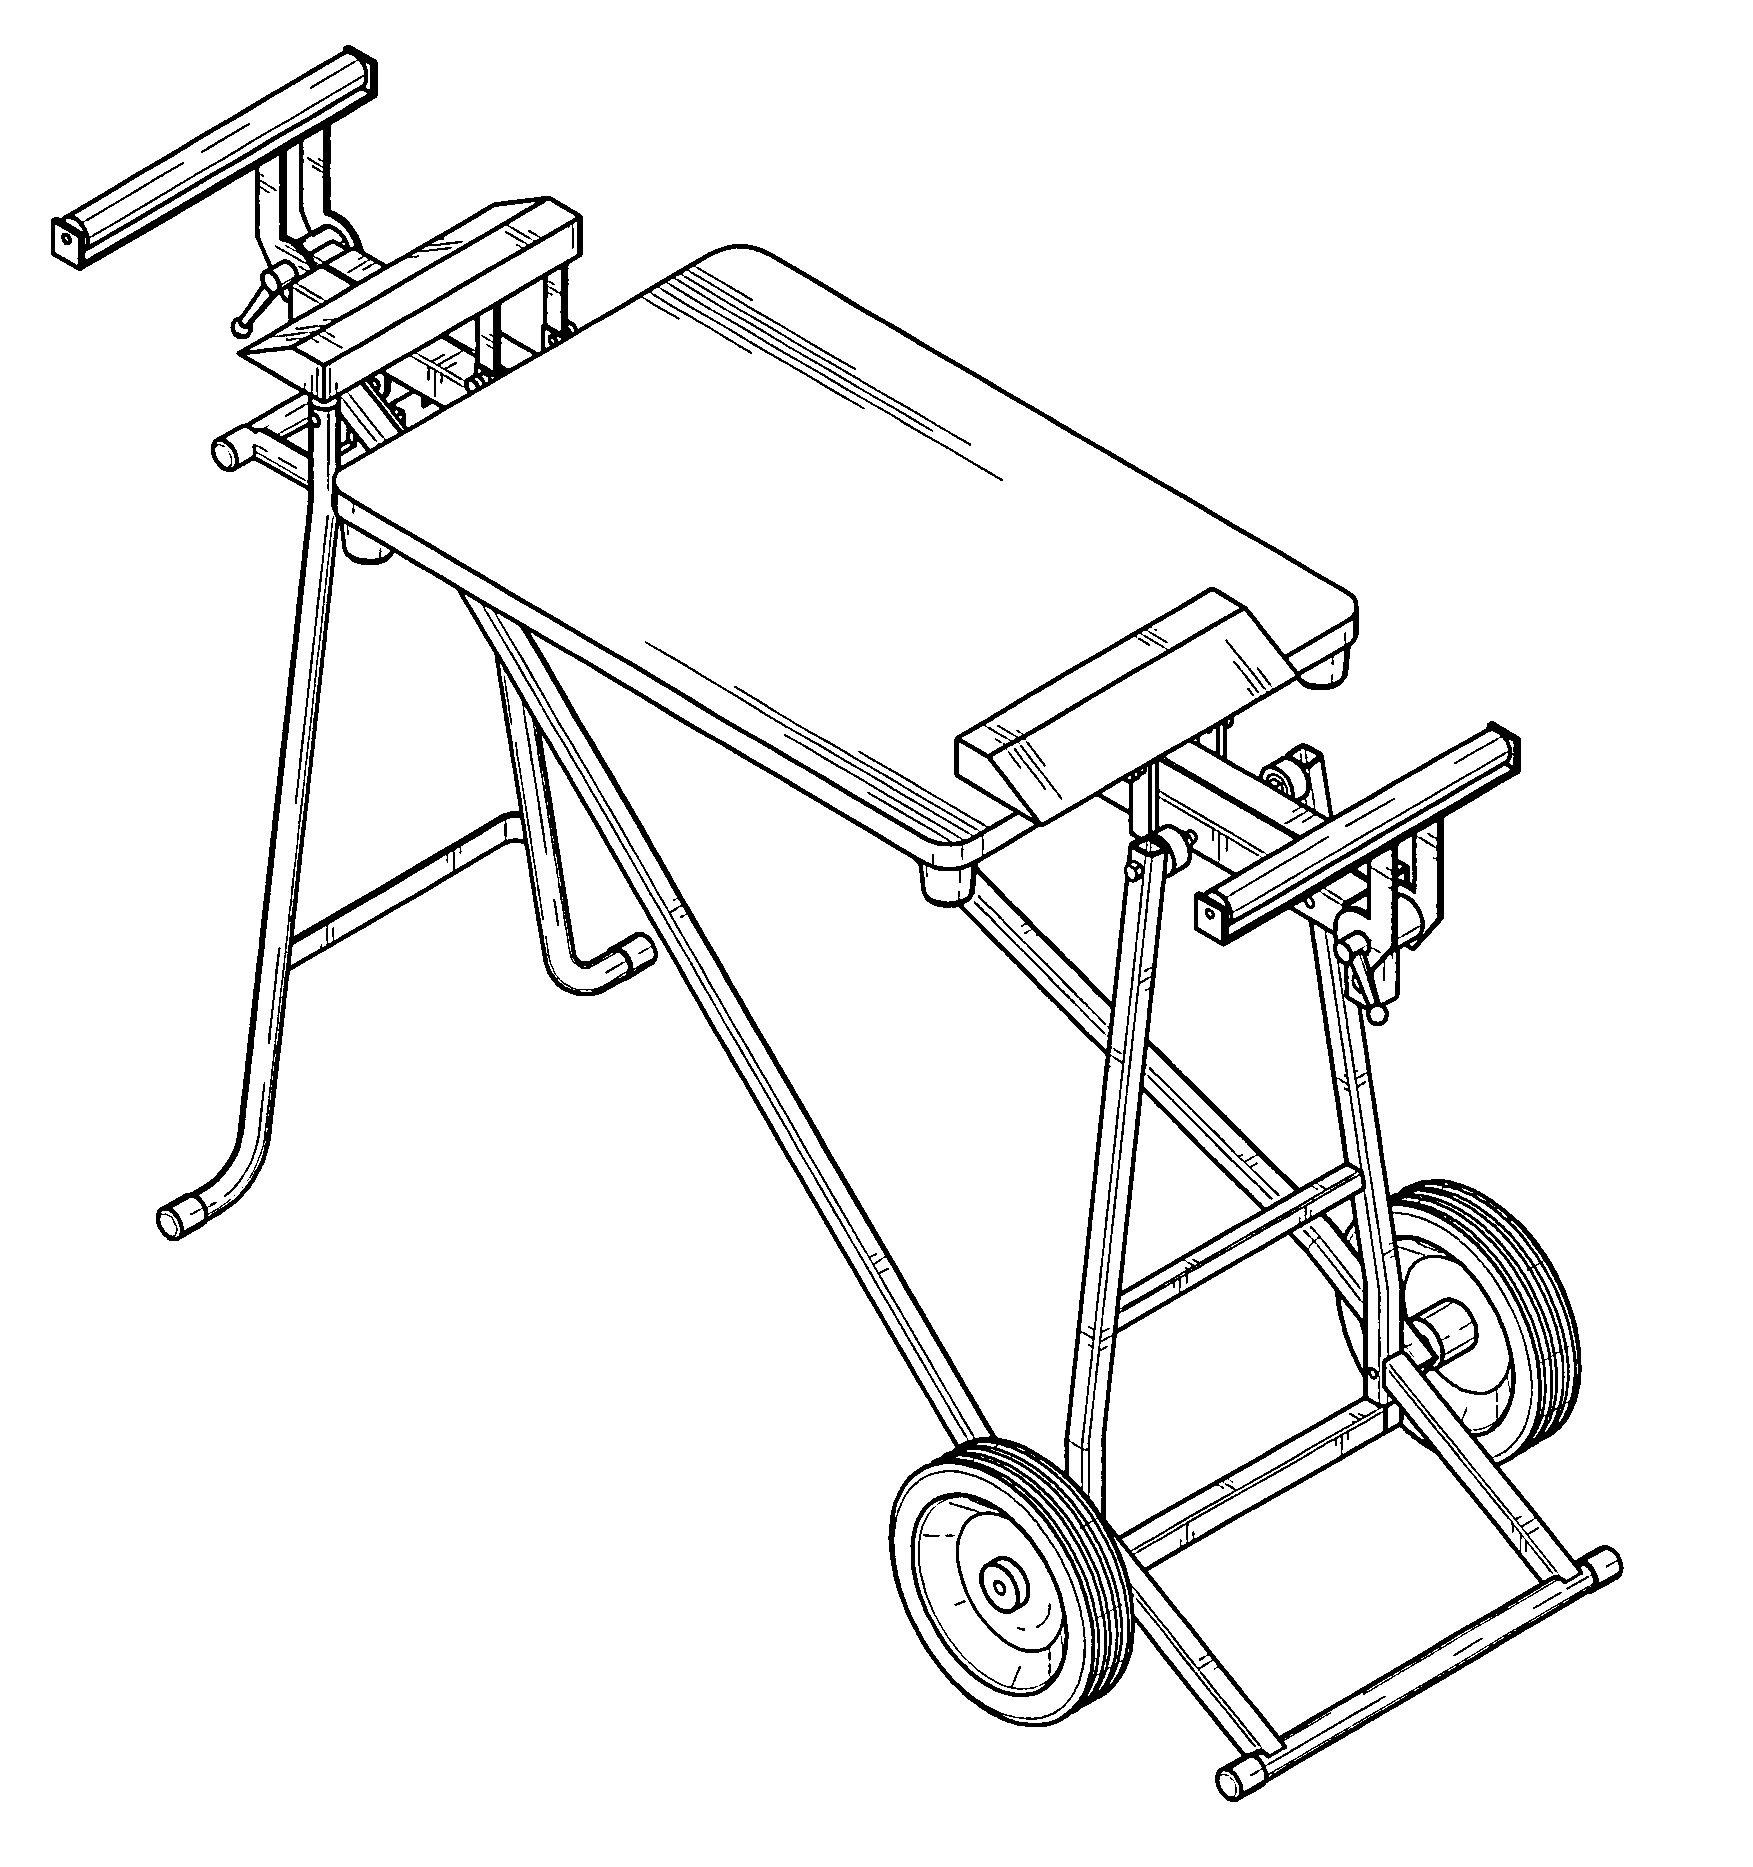 Compound Miter Saw Bench Plans | Wiring Diagram Database on troubleshooting diagrams, gmc fuse box diagrams, engine diagrams, internet of things diagrams, motor diagrams, hvac diagrams, switch diagrams, series and parallel circuits diagrams, transformer diagrams, friendship bracelet diagrams, smart car diagrams, battery diagrams, lighting diagrams, sincgars radio configurations diagrams, led circuit diagrams, honda motorcycle repair diagrams, electronic circuit diagrams, pinout diagrams, electrical diagrams,